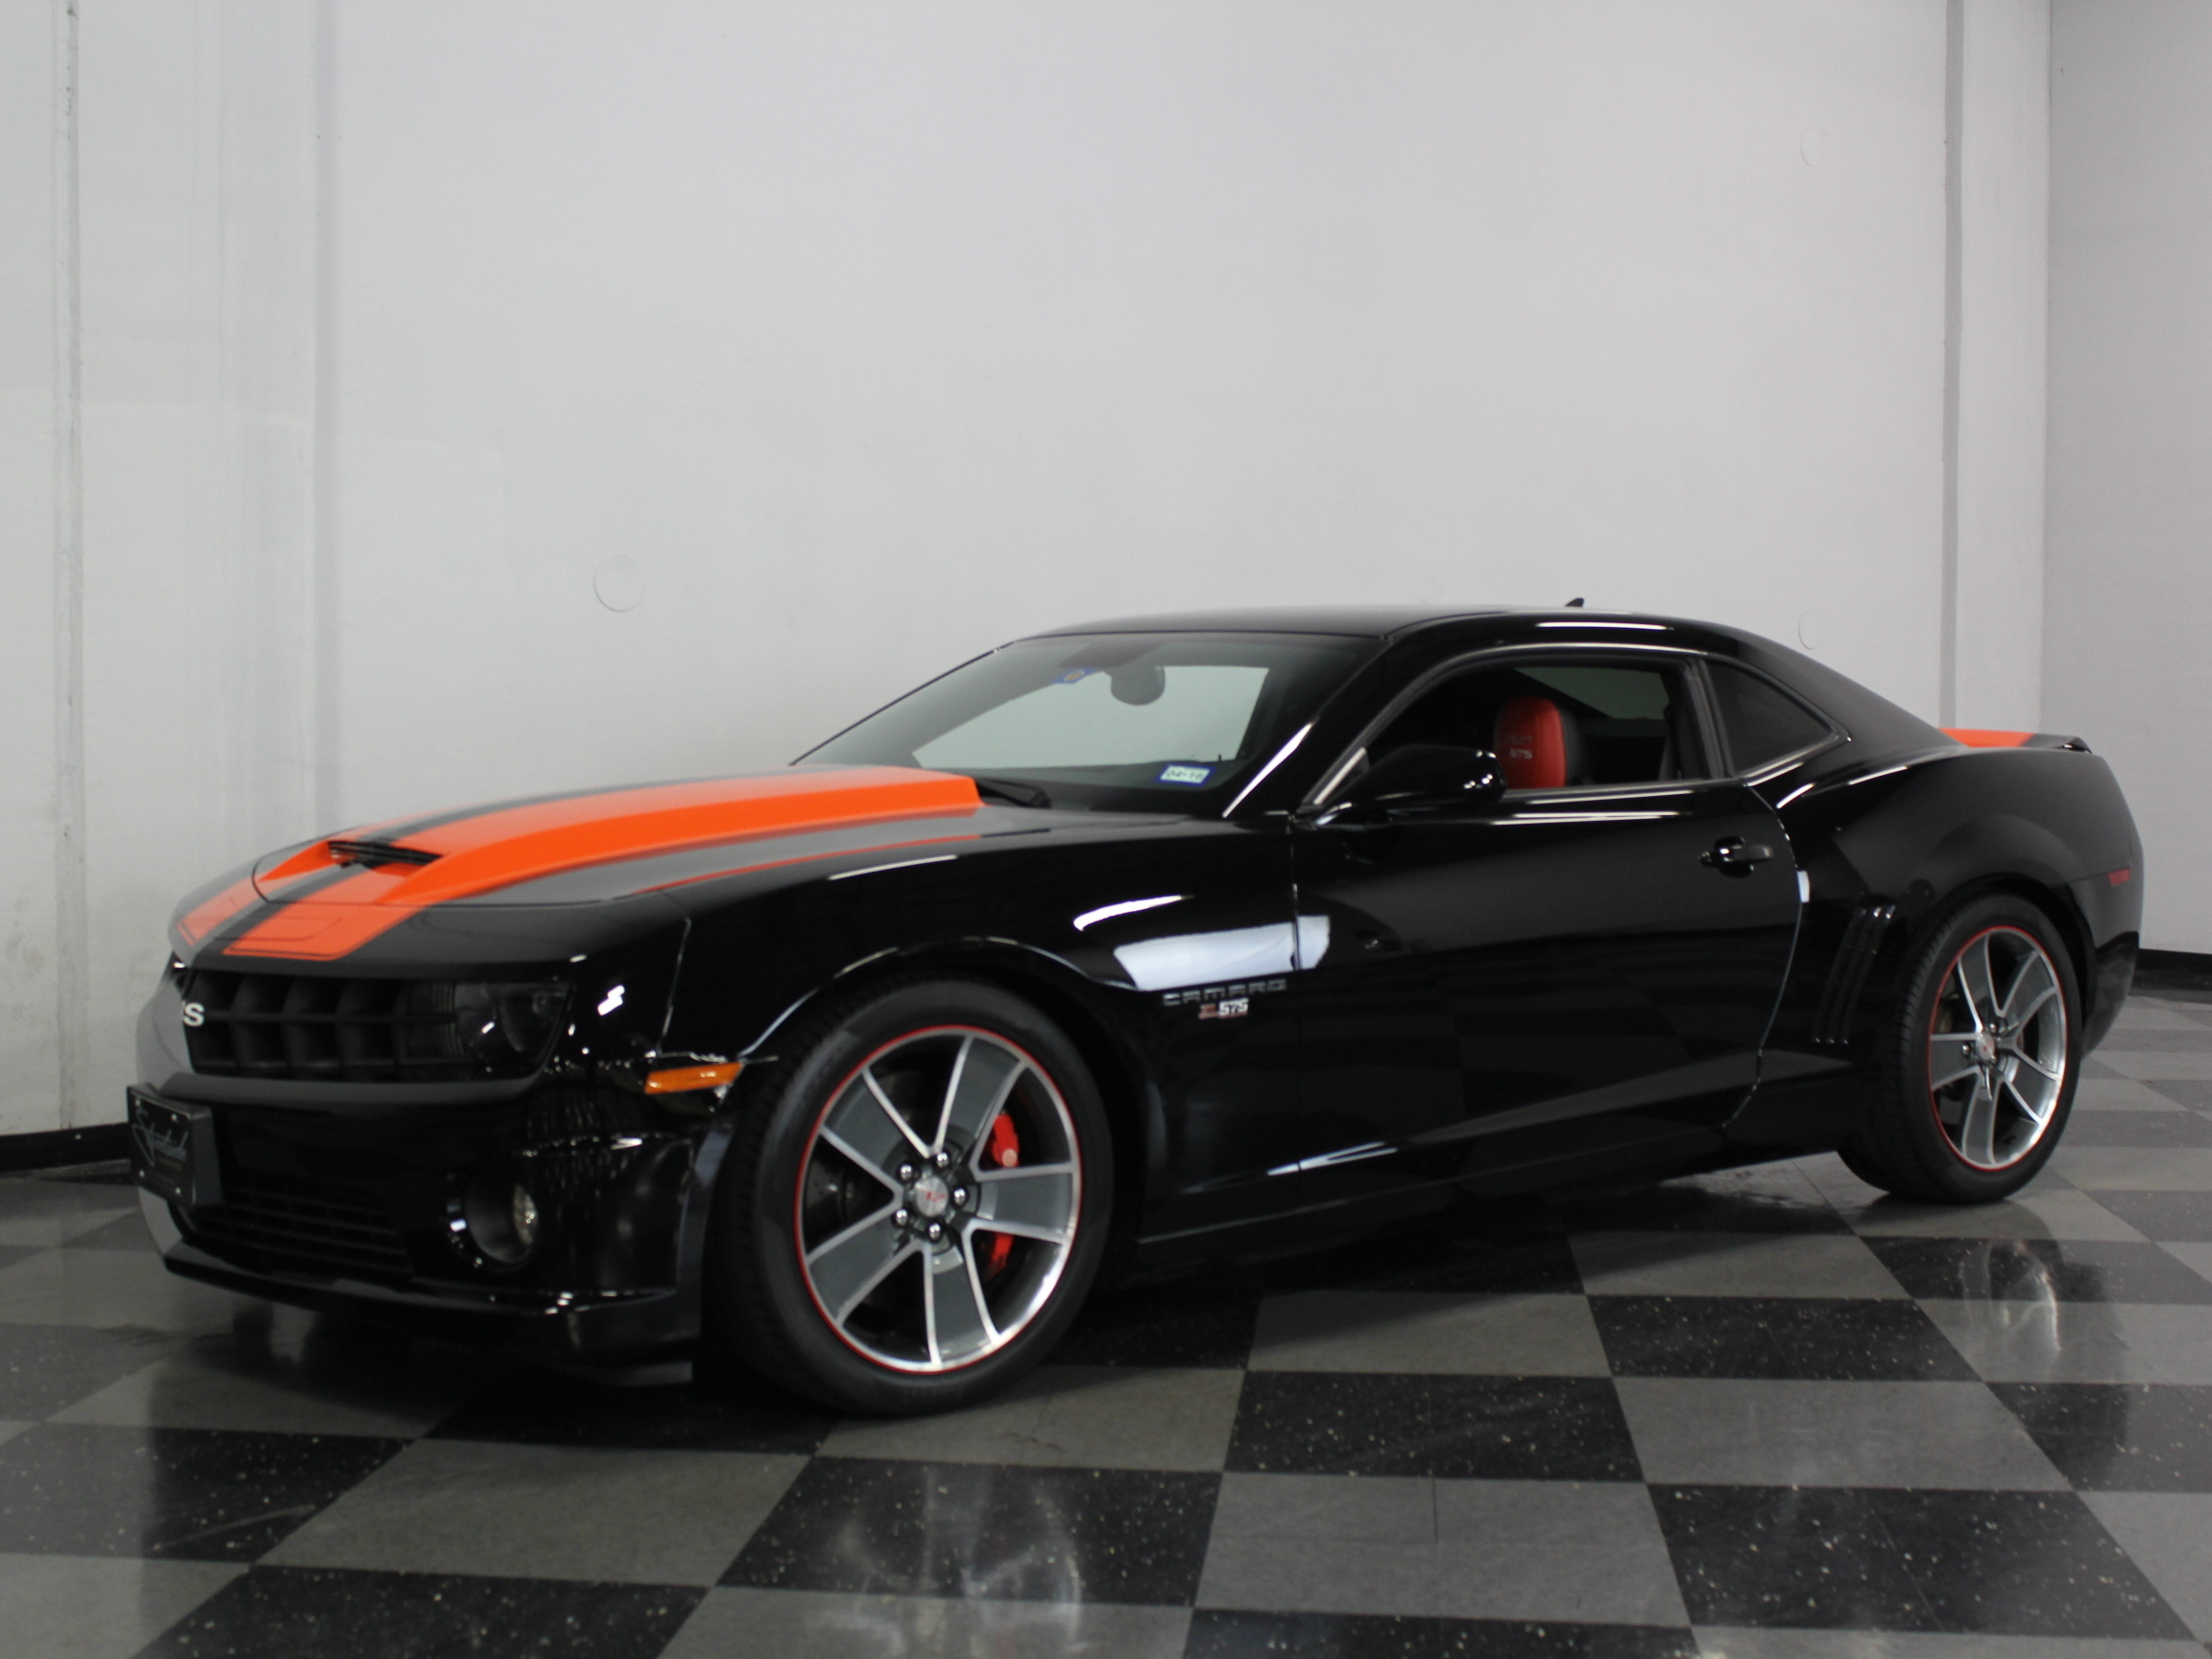 2010 Chevrolet Camaro Slp Zl575 For Sale 45646 Mcg